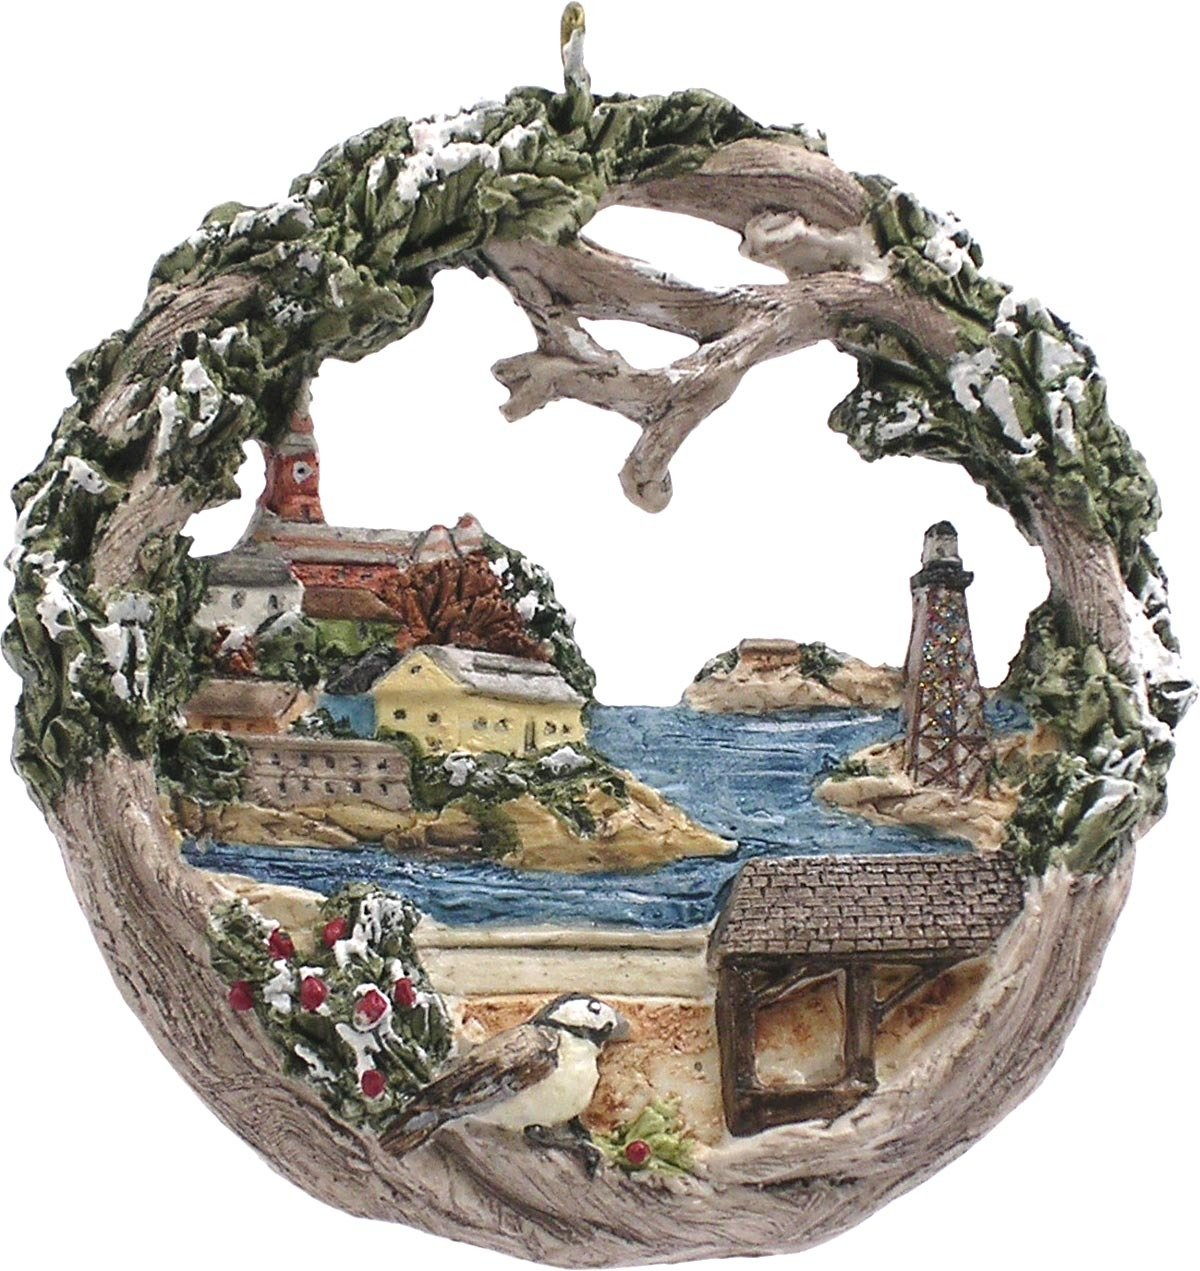 2007 Marblehead Annual Ornament  - Harbor from the Causeway